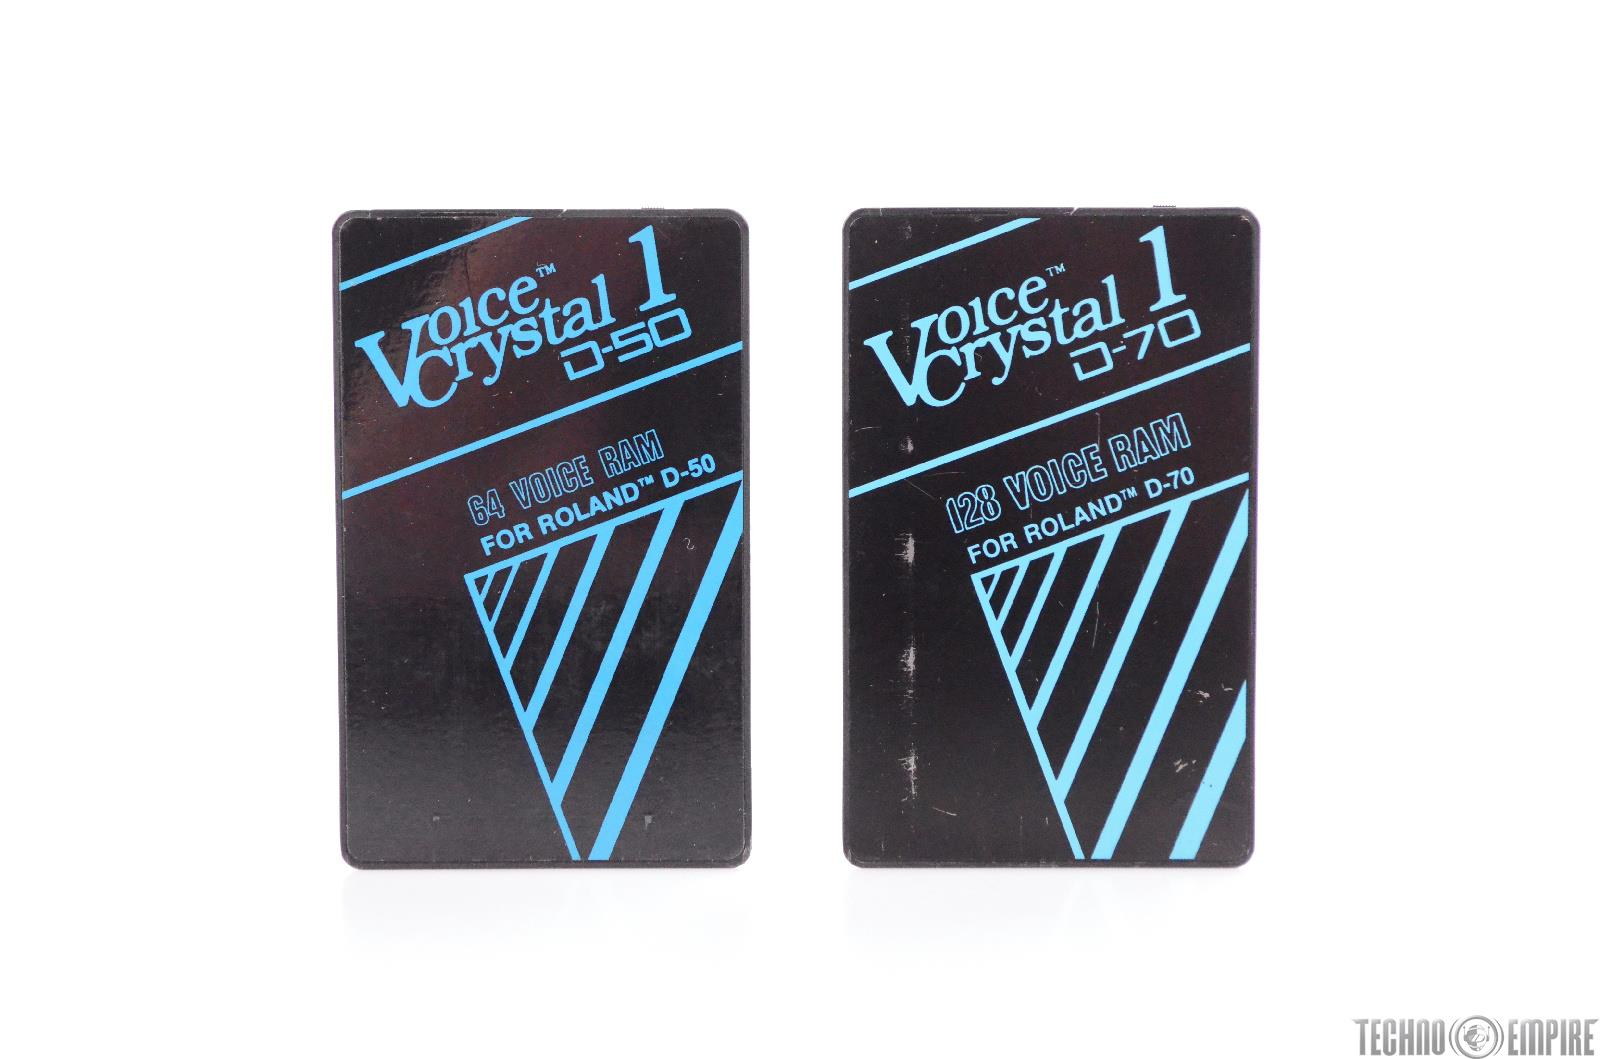 Voice Crystal 1 RAM Cards for Roland D-50 & D-70 #31123